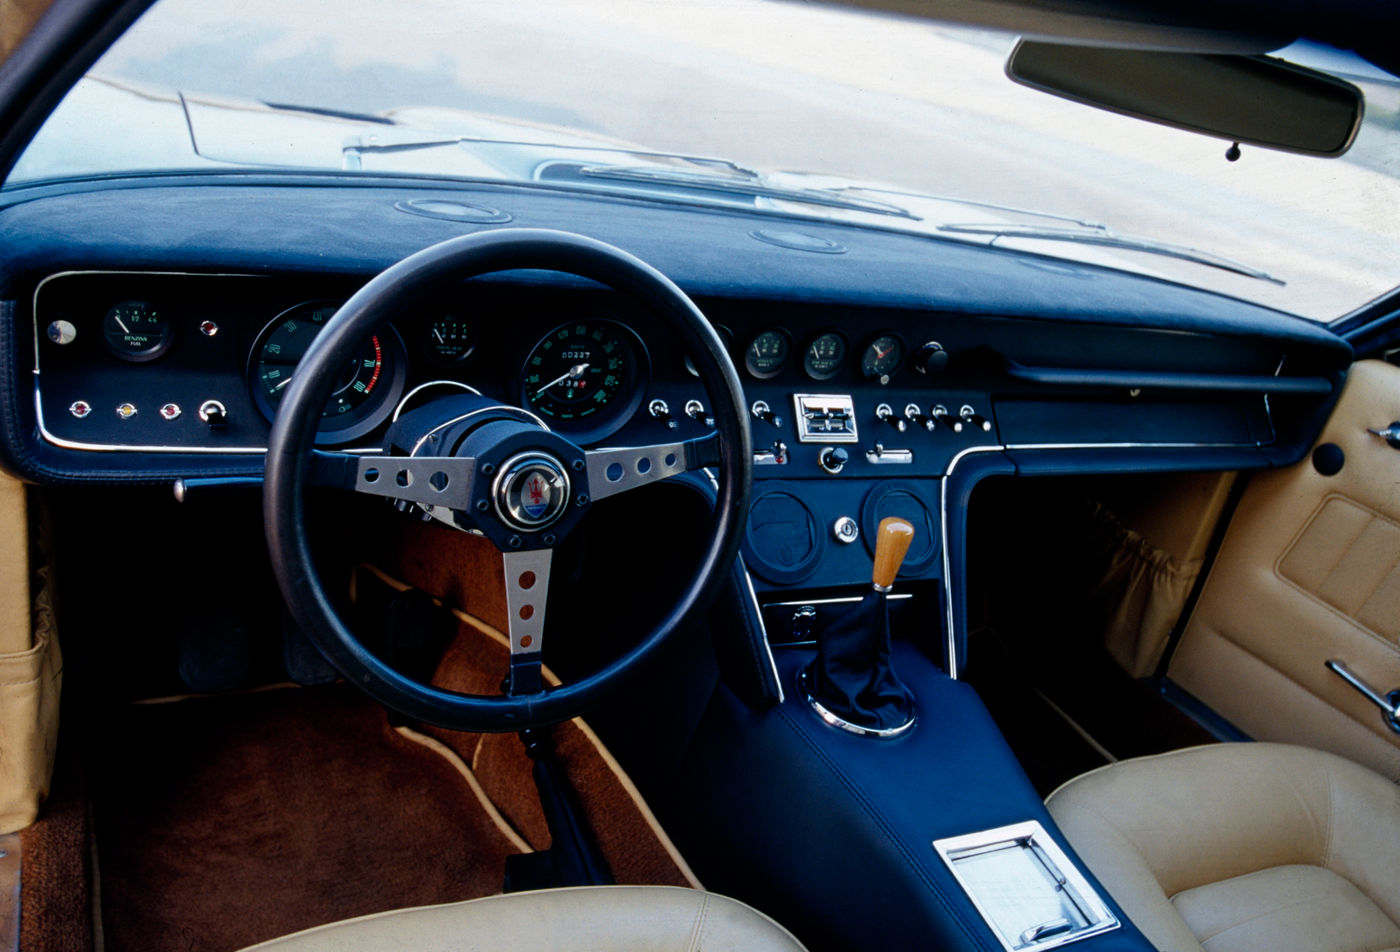 1966 Maserati Ghibli - interior view of the classic 2-door coupe